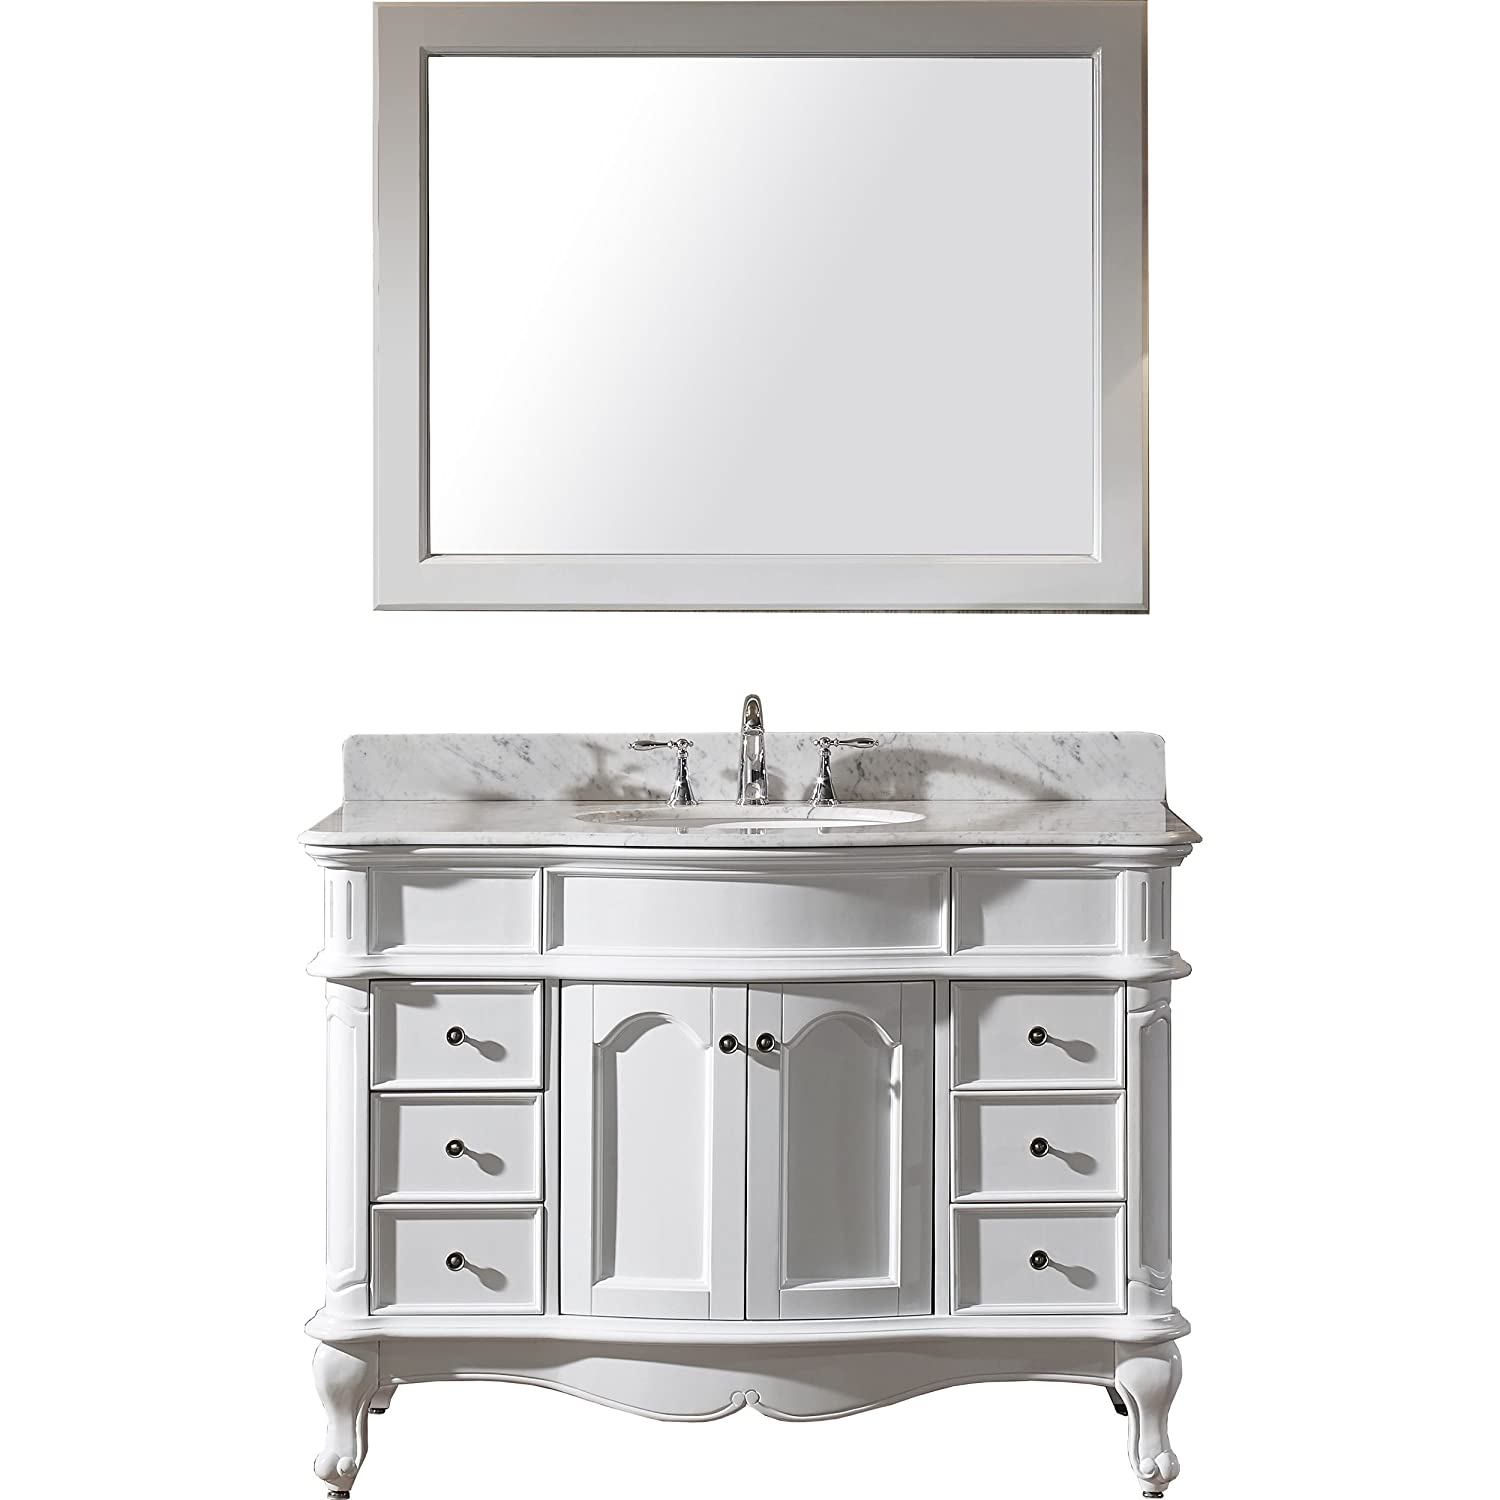 Virtu ESWMROWH Norhaven Single Bathroom Vanity Cabinet Set - Single bathroom vanity cabinets